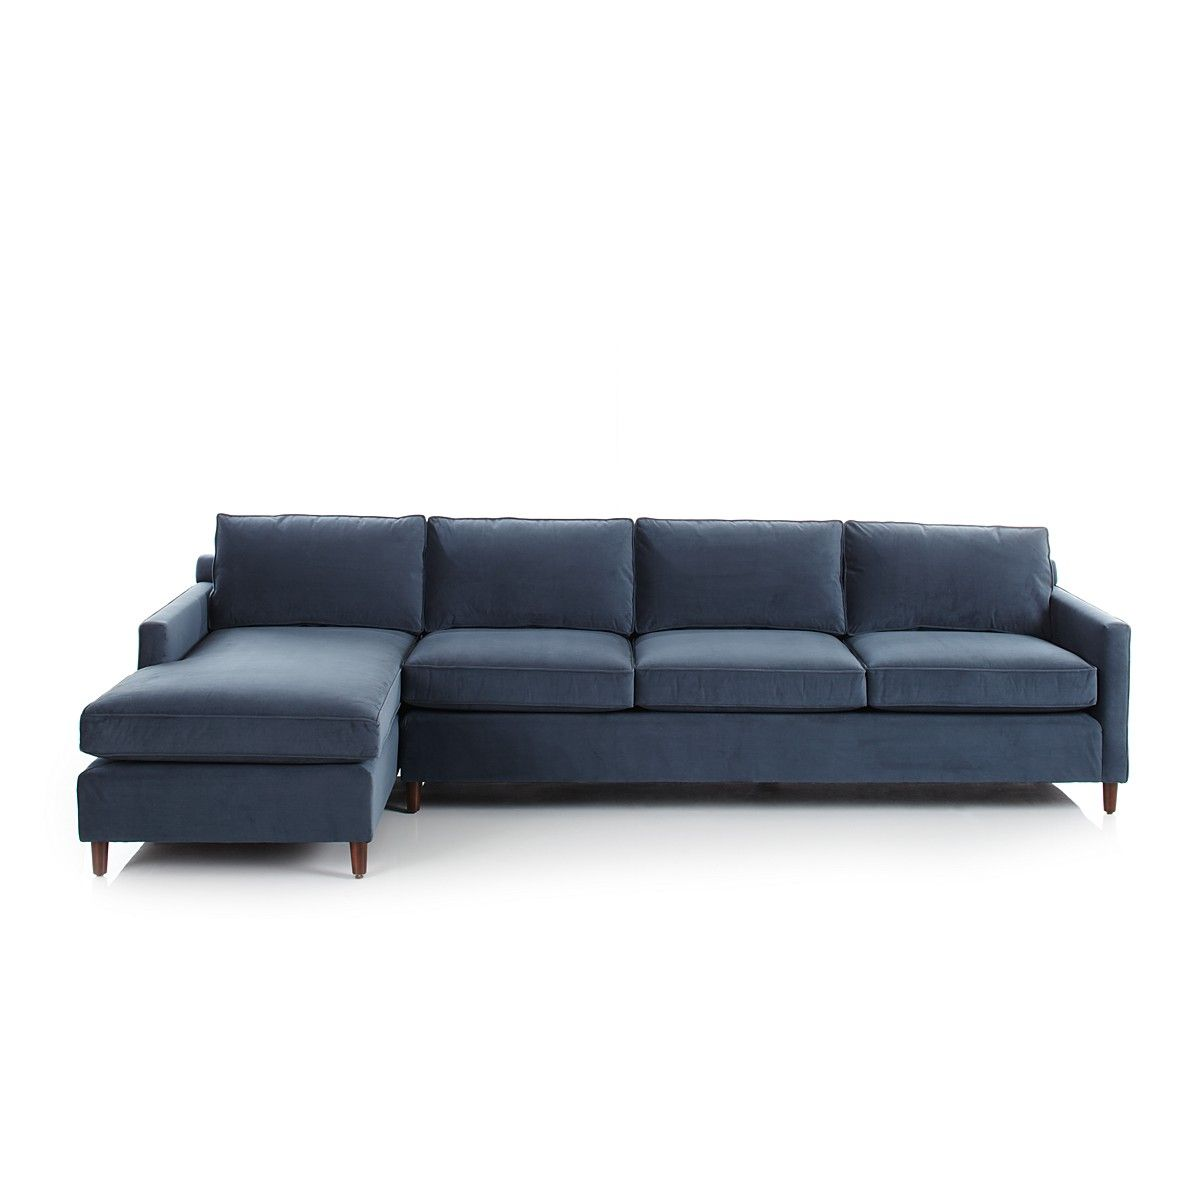 mitc gold and bob williams sofa 3 2 seater leather deals mitchell 43 martin sectional